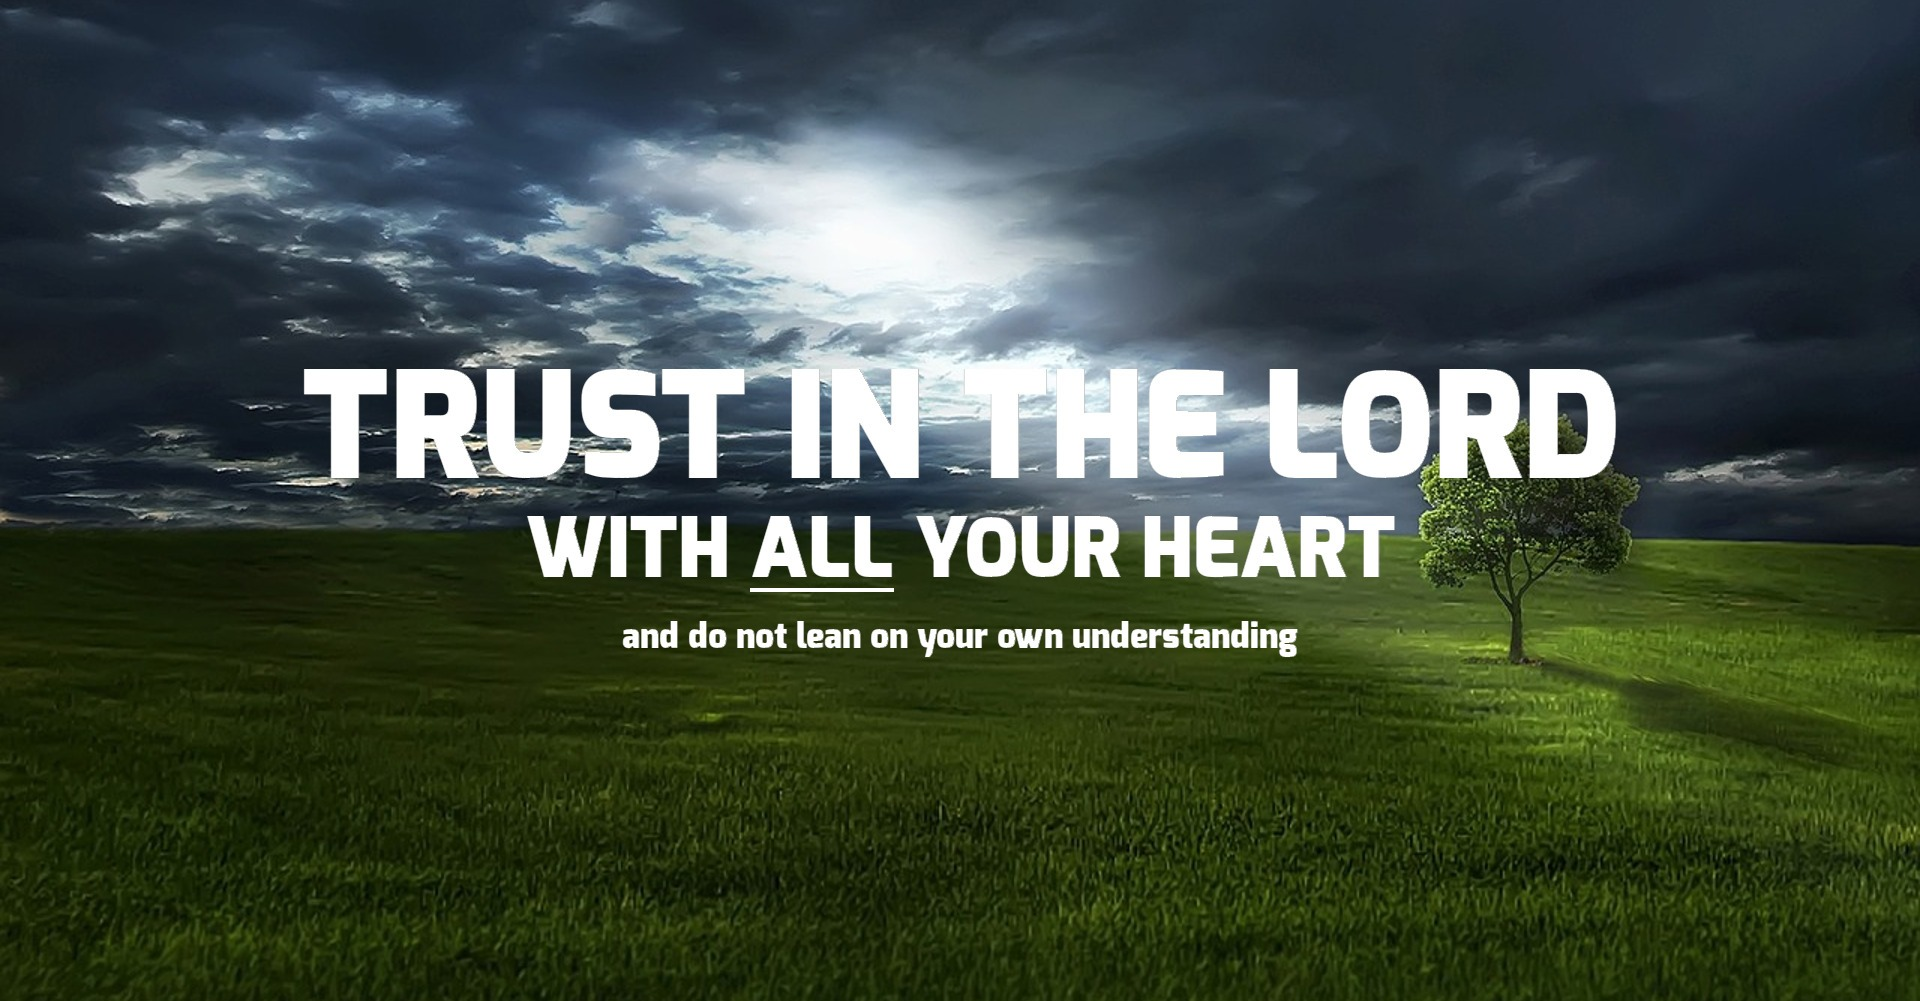 IPC   TRUST IN THE LORD WITH ALL YOUR HEART